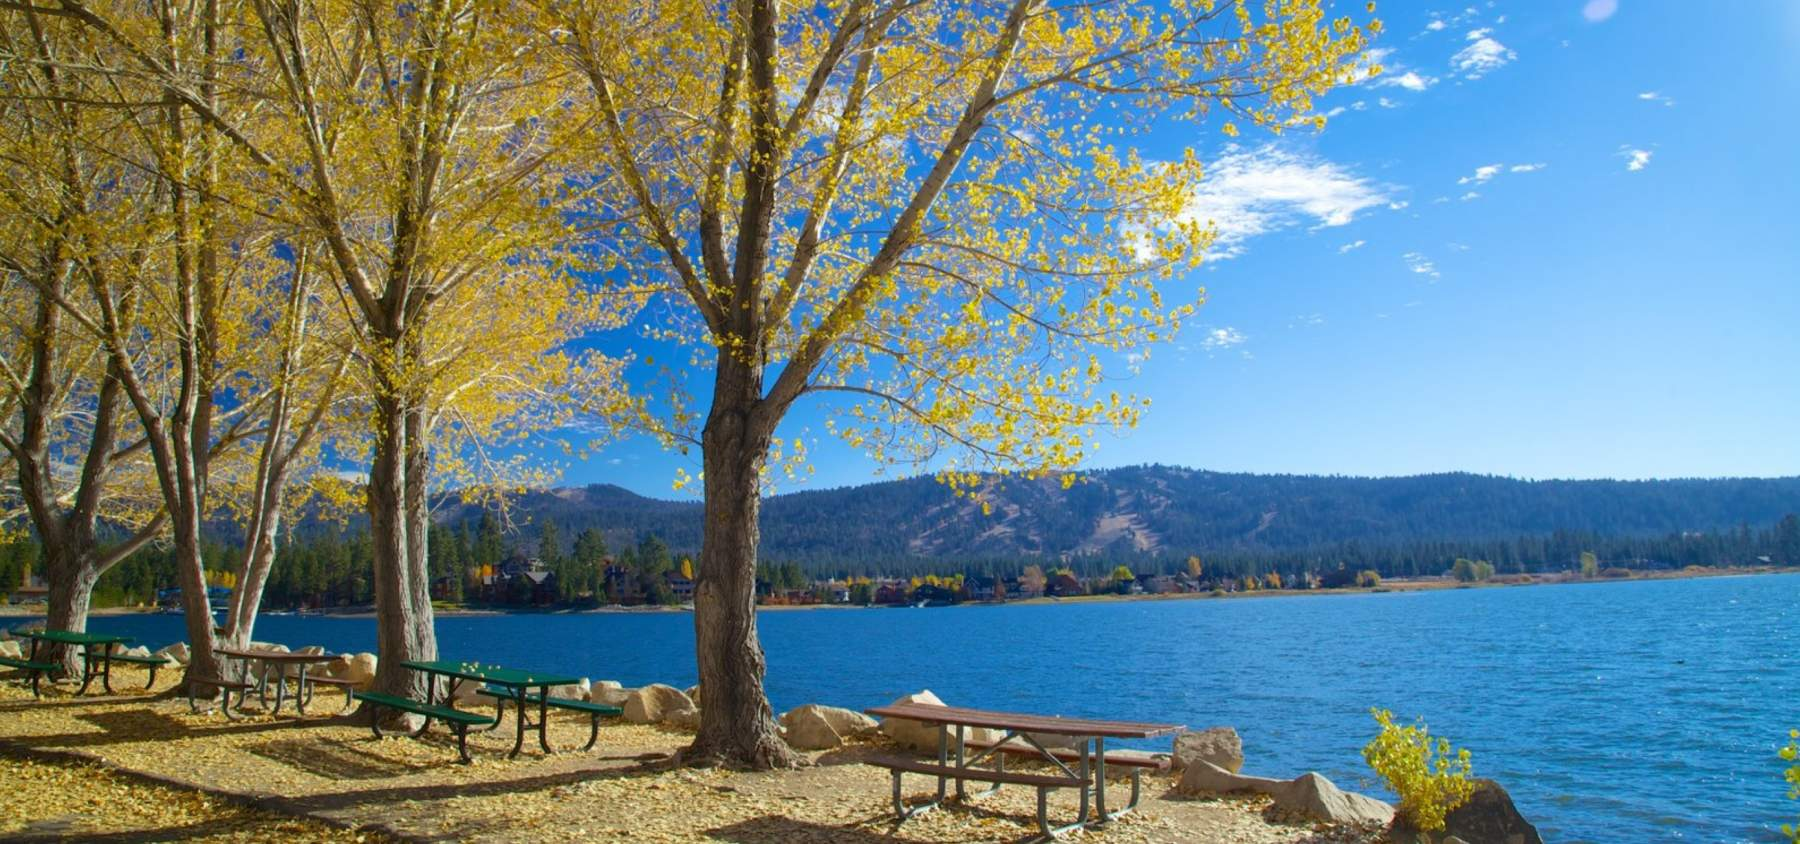 Fall in Big Bear